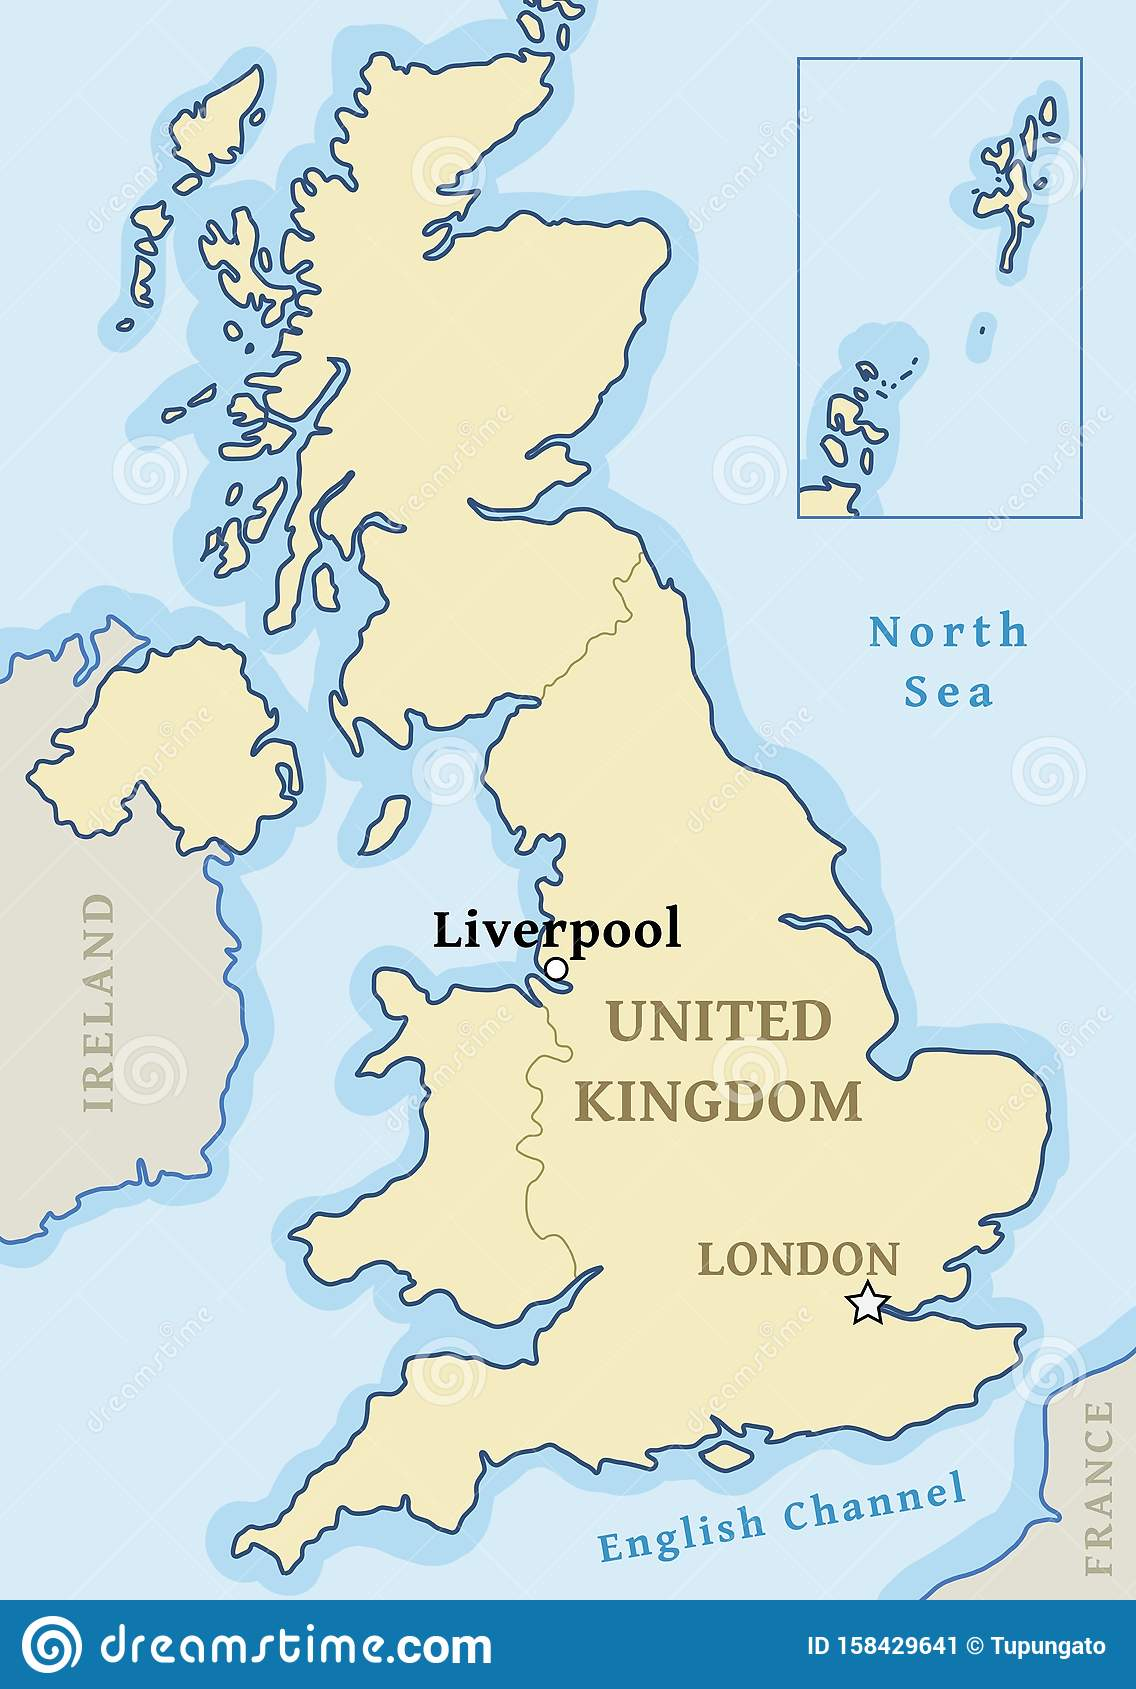 Liverpool map location stock vector. Illustration of ...